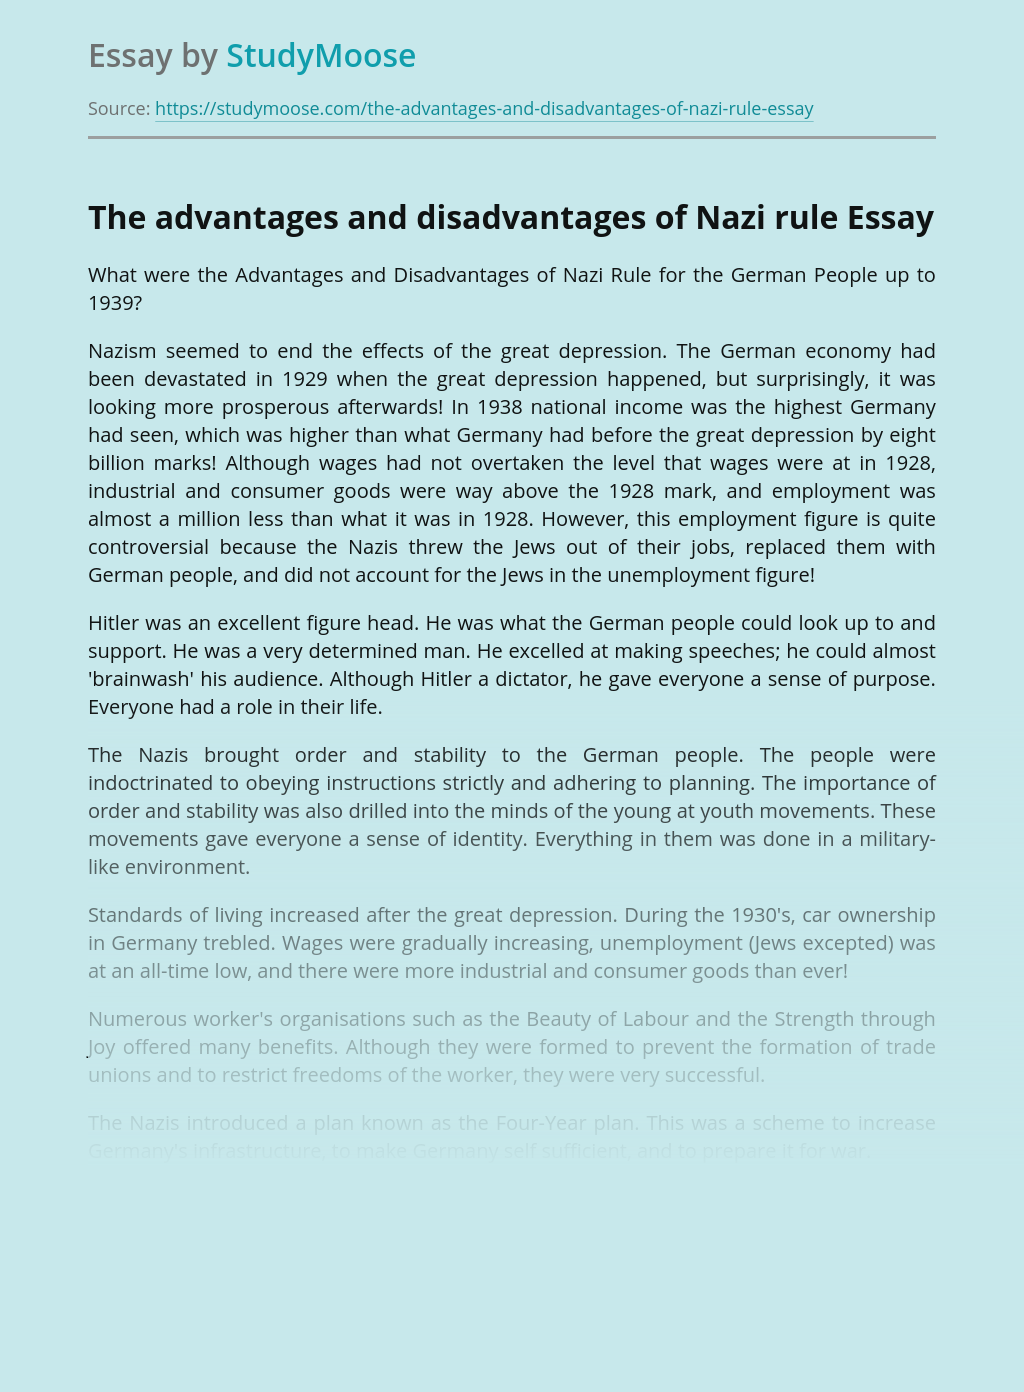 The advantages and disadvantages of Nazi rule